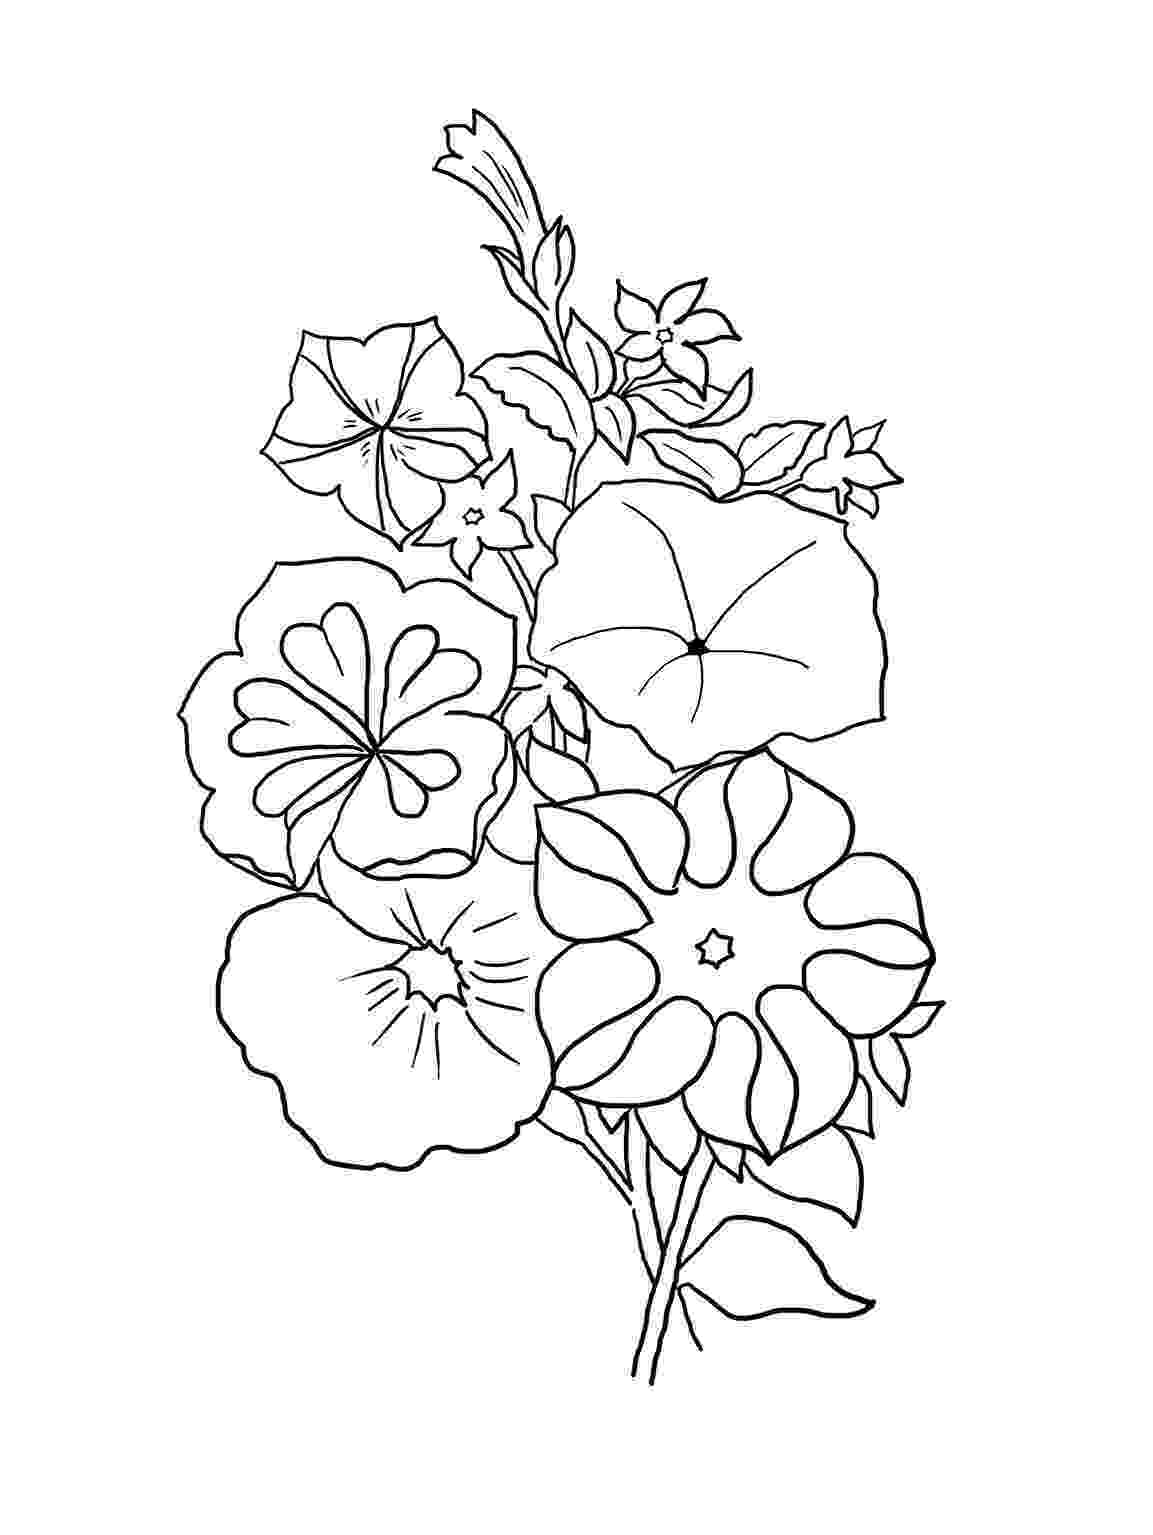 flowers colouring flower garden coloring pages to download and print for free colouring flowers